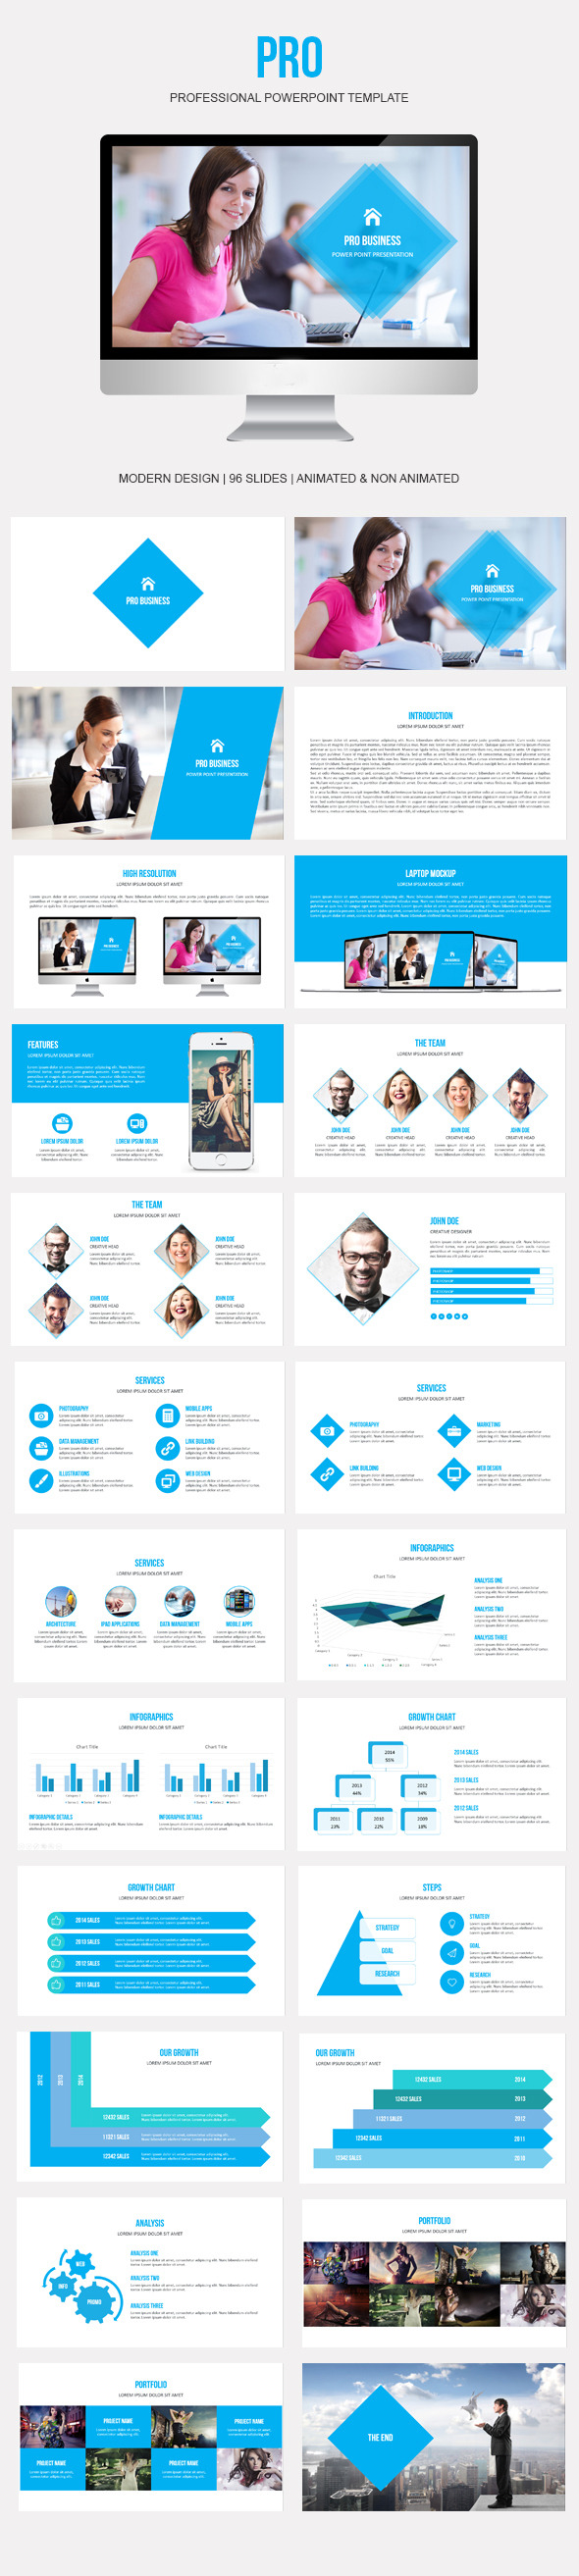 Pro Powerpoint Presentation Template